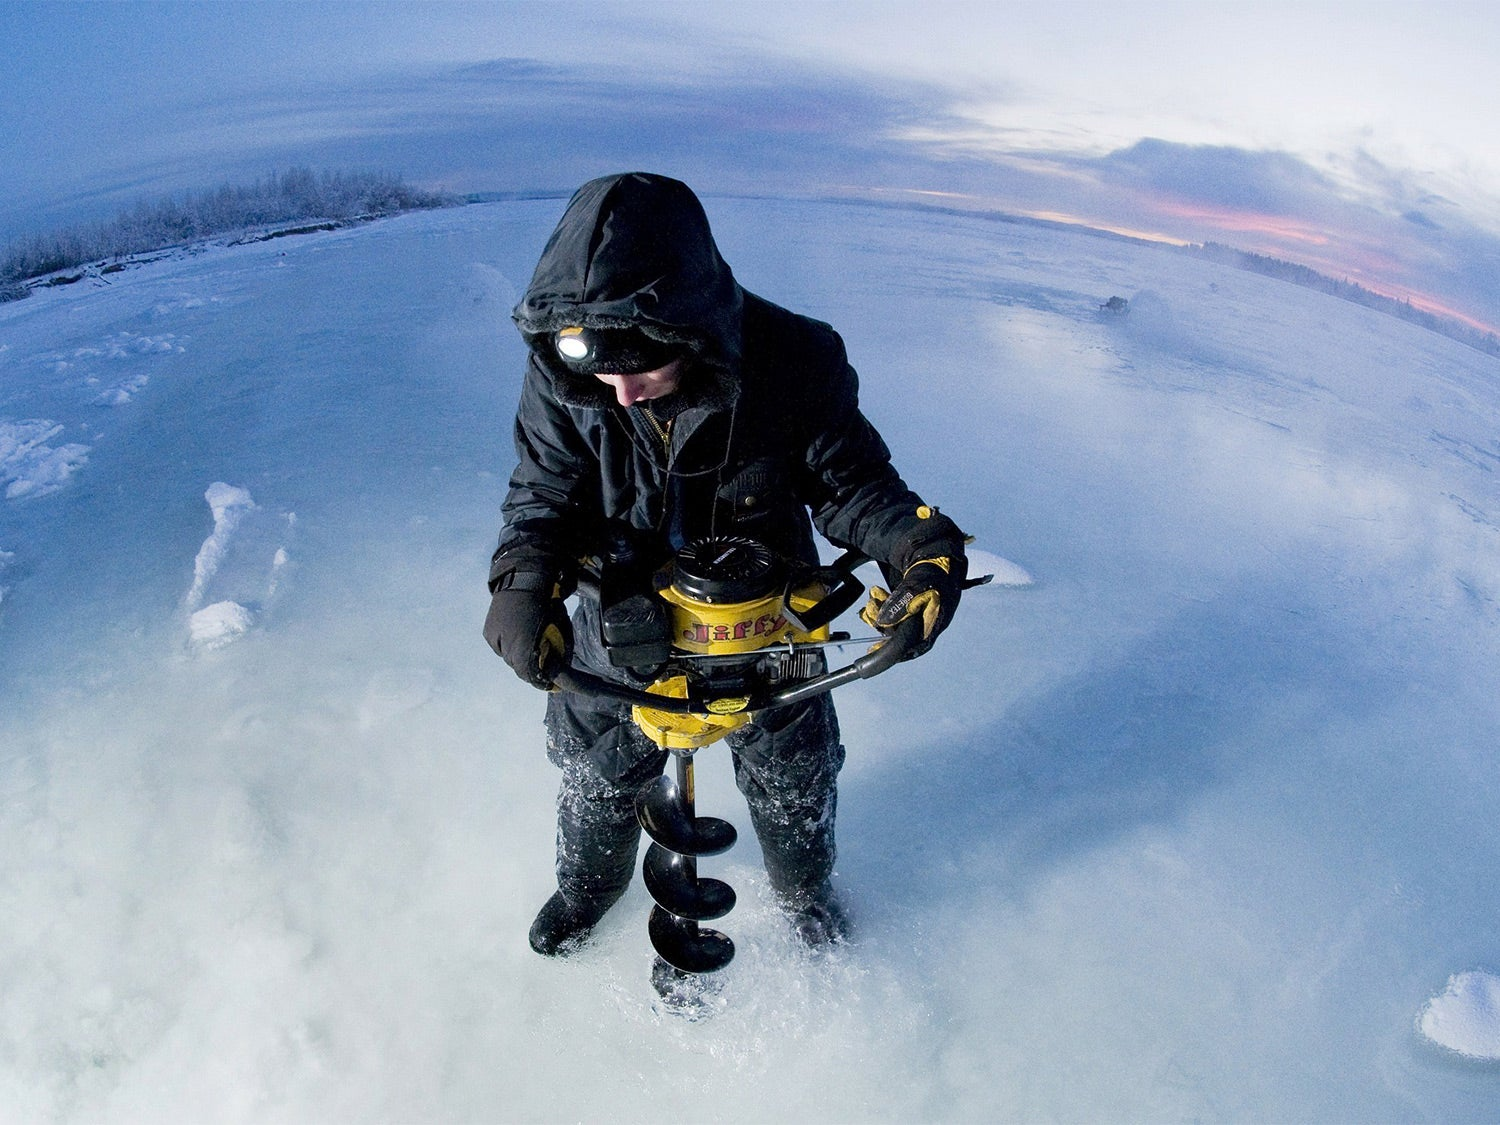 A man uses an ice auger to drill through the ice, while wearing the best heated jacket.